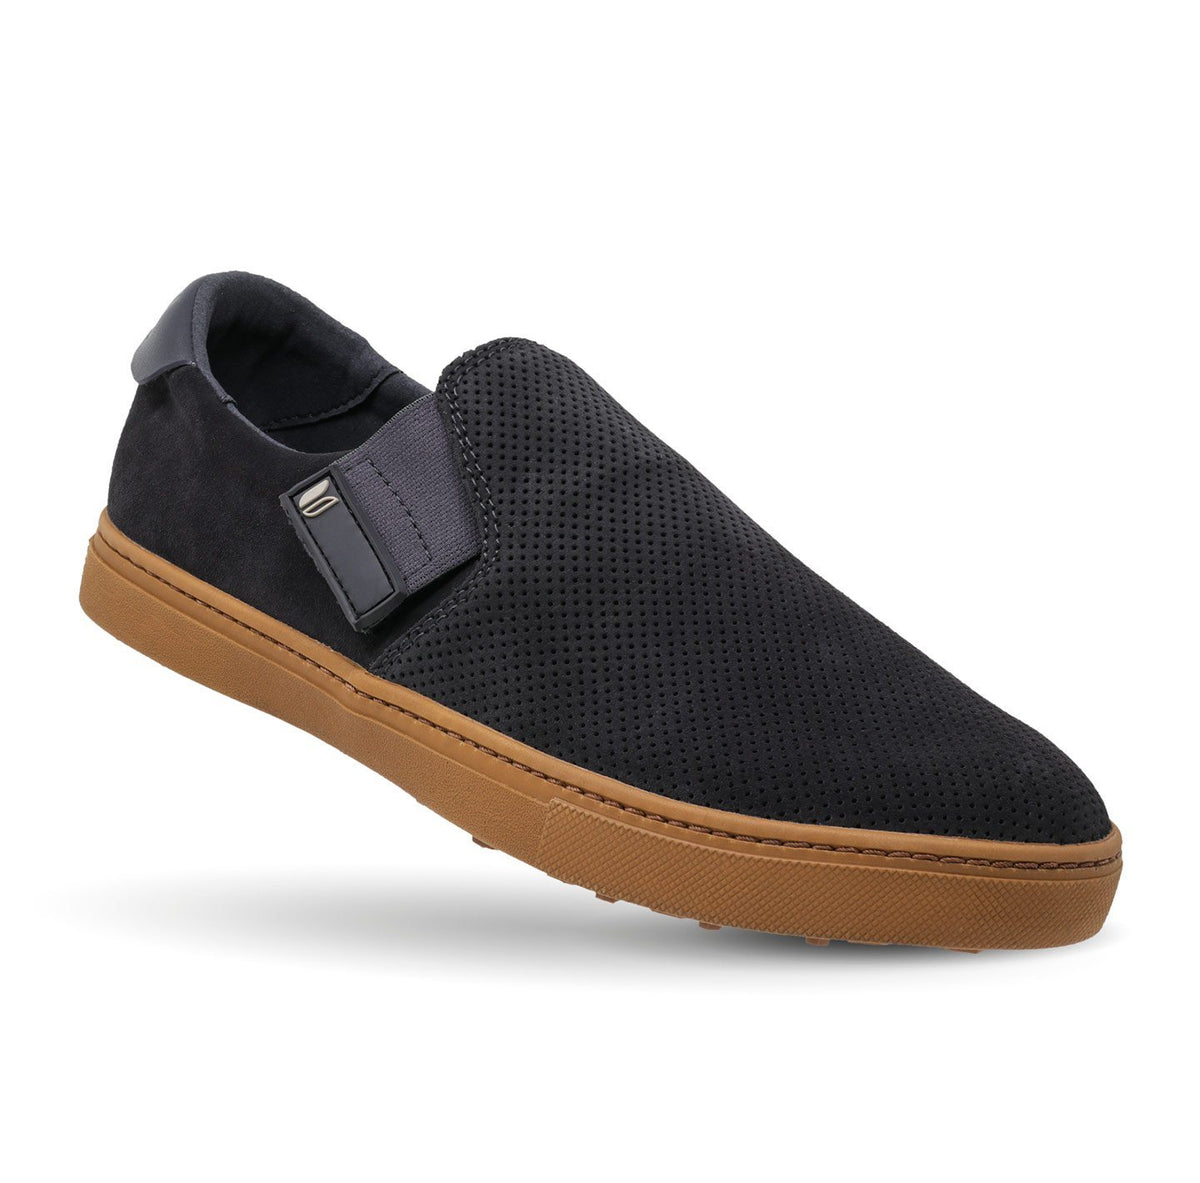 True X Linksoul Slip-On Shoe